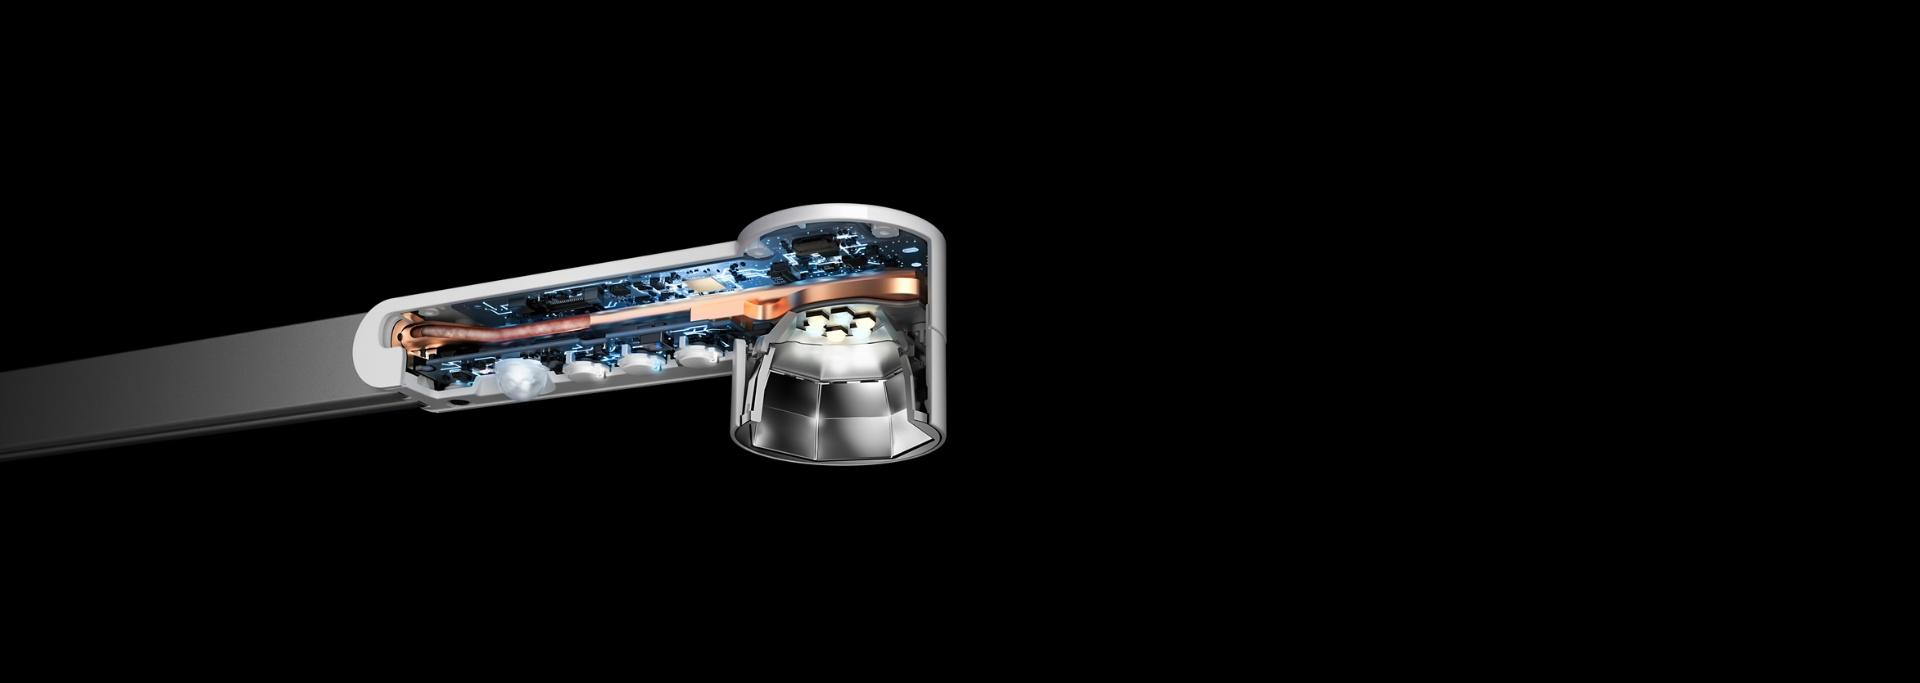 Dyson Lightcycle technology cutaway